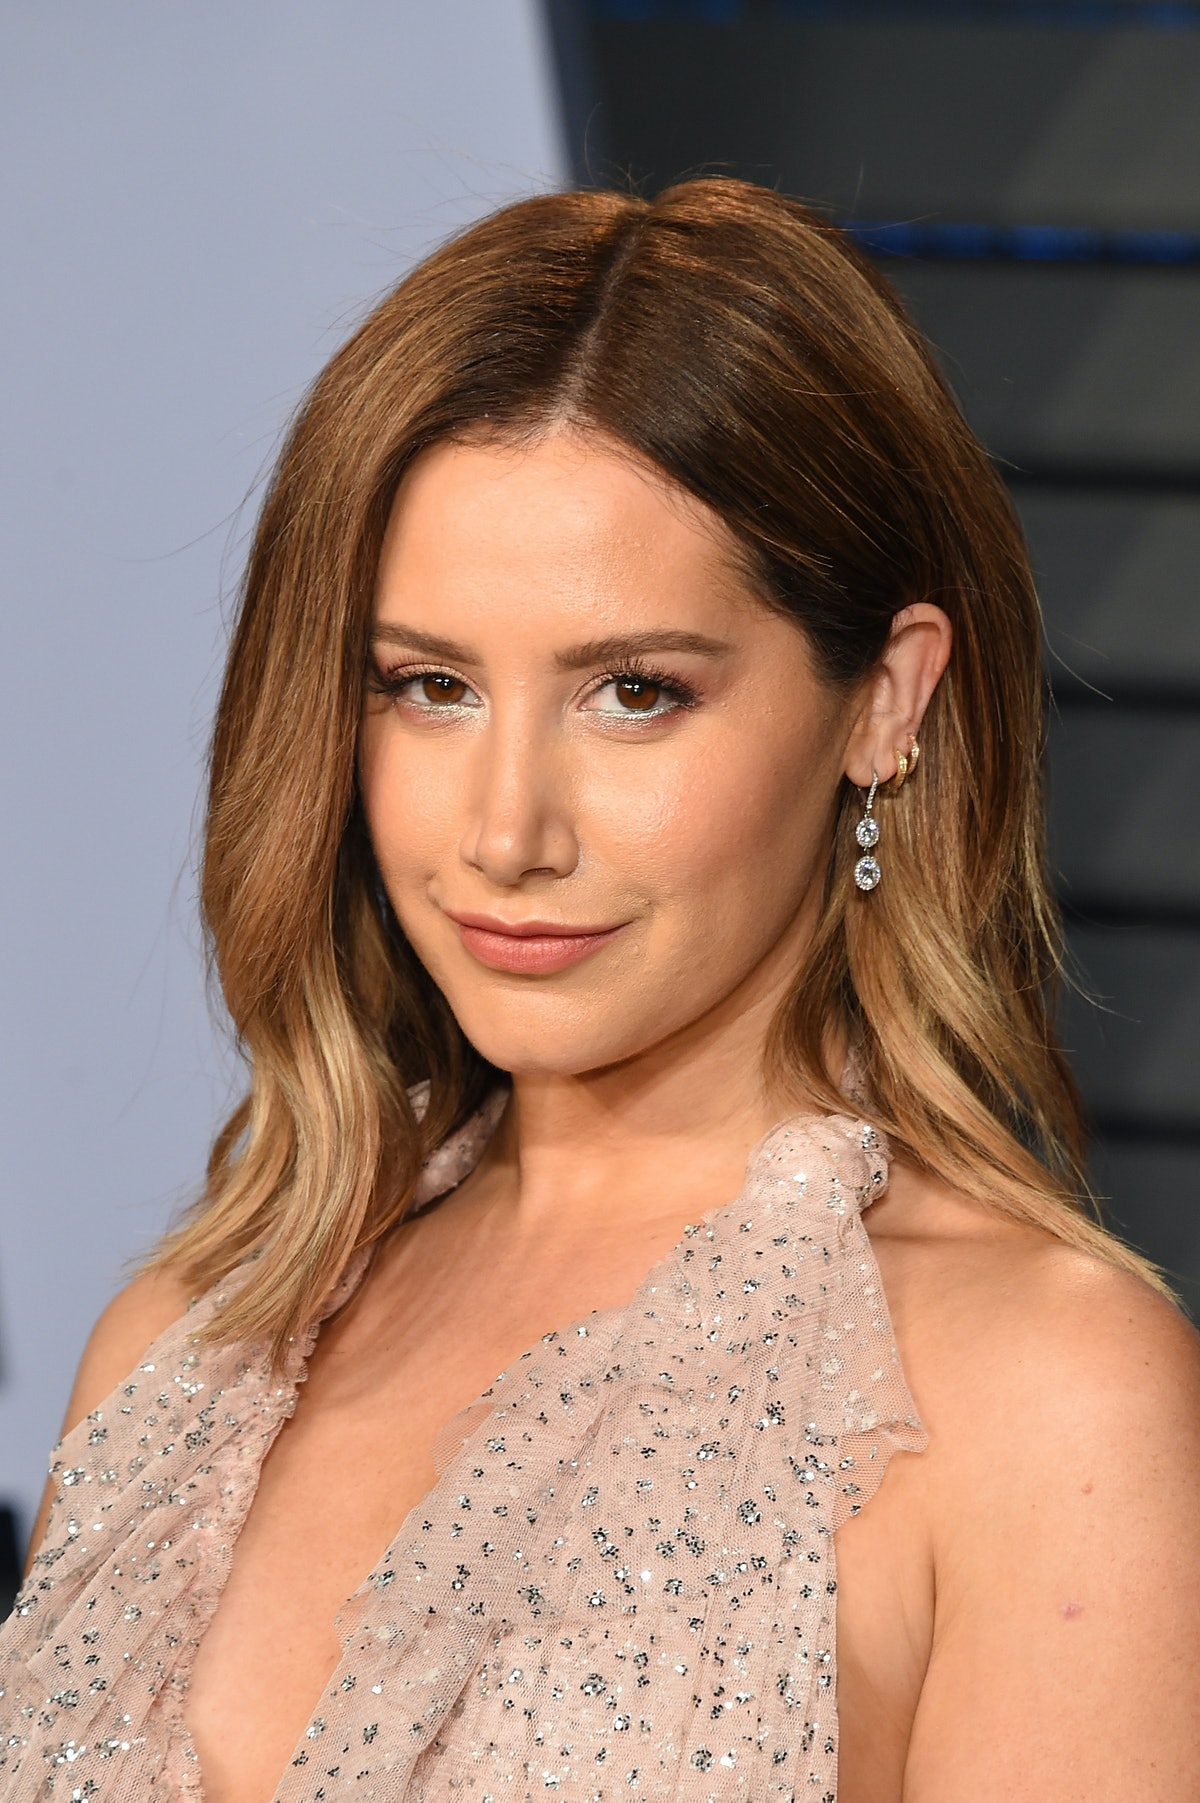 BEVERLY HILLS, CA - MARCH 04:  Actress Ashley Tisdale attends the 2018 Vanity Fair Oscar Party hosted by Radhika Jones at the Wallis Annenberg Center for the Performing Arts on March 4, 2018 in Beverly Hills, California.  (Photo by J. Merritt/Getty Images)